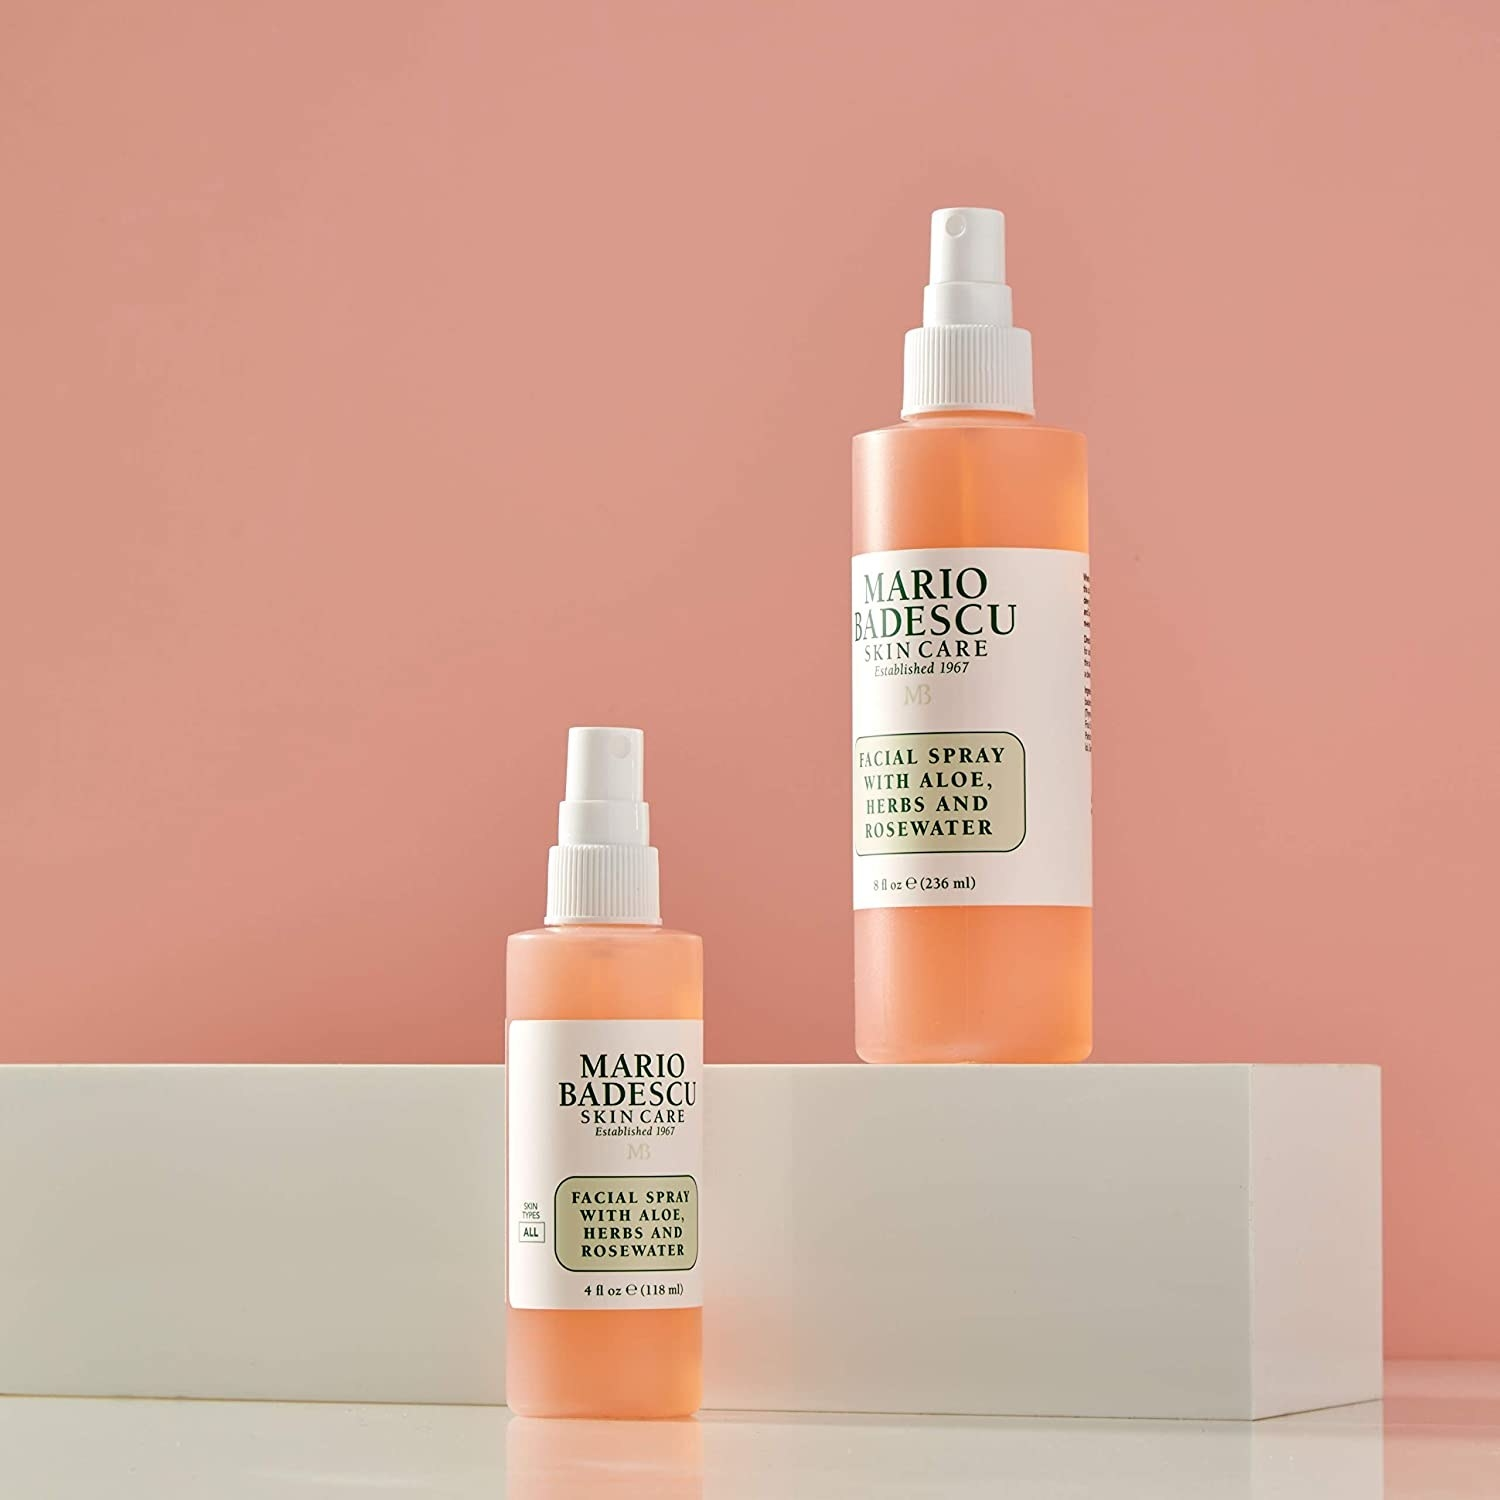 Two bottles of the facial spray on a ledge against a simple backdrop